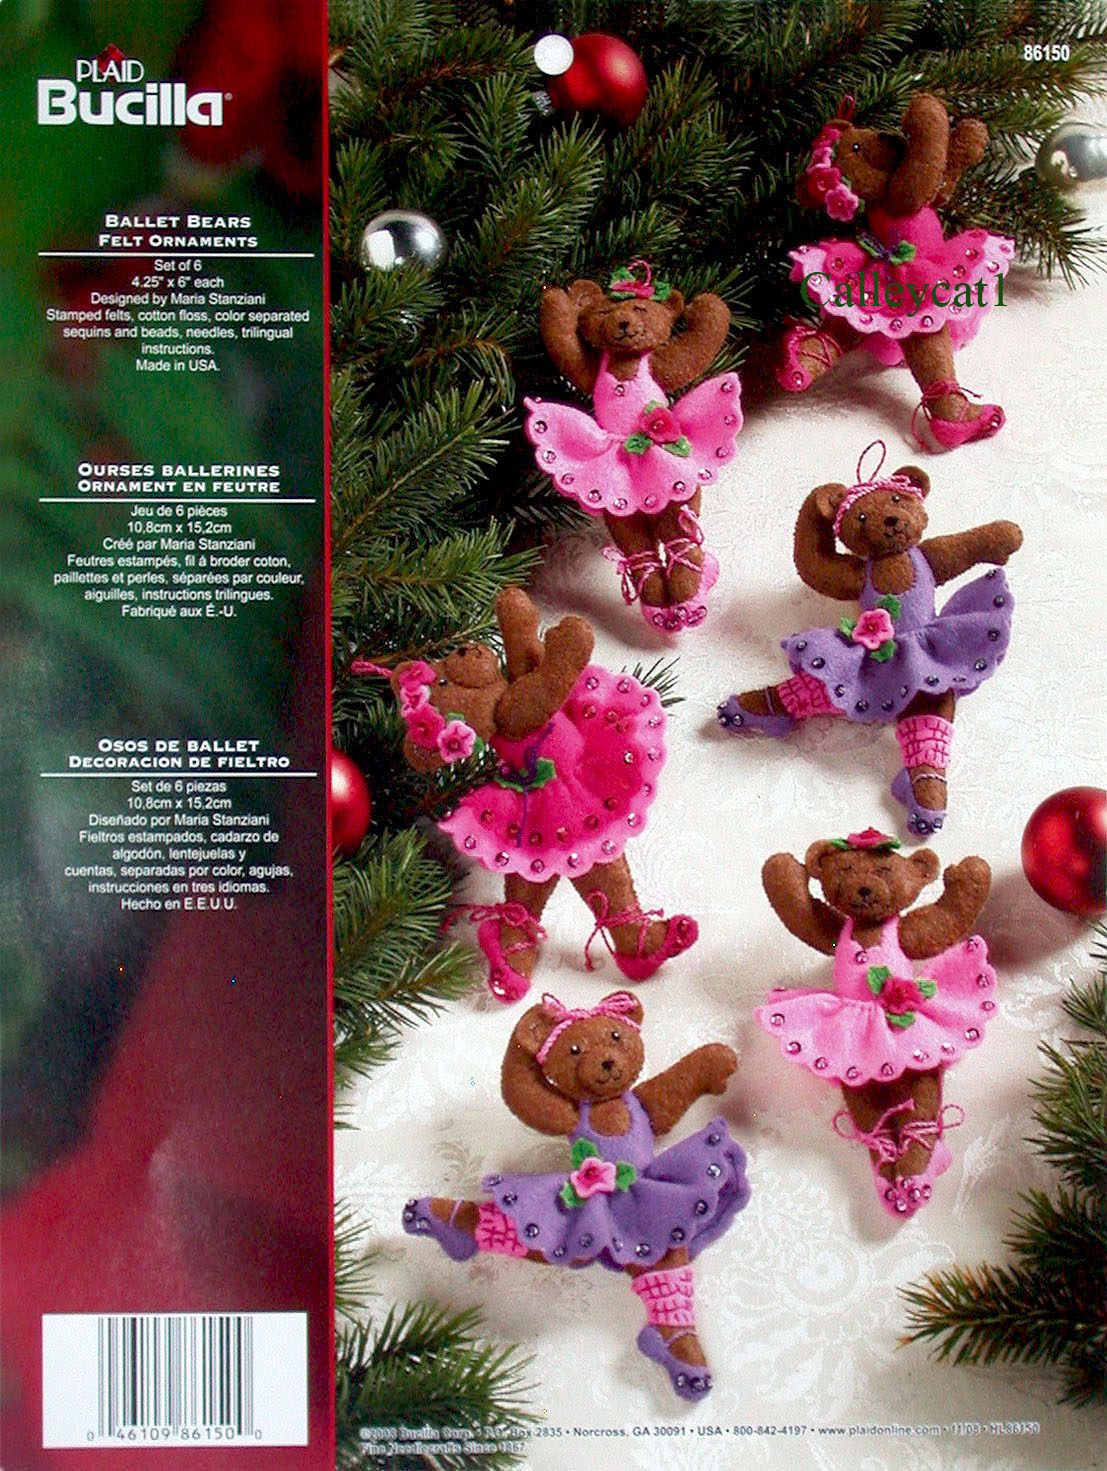 bucilla ballet bears 6 piece felt christmas ornament kit